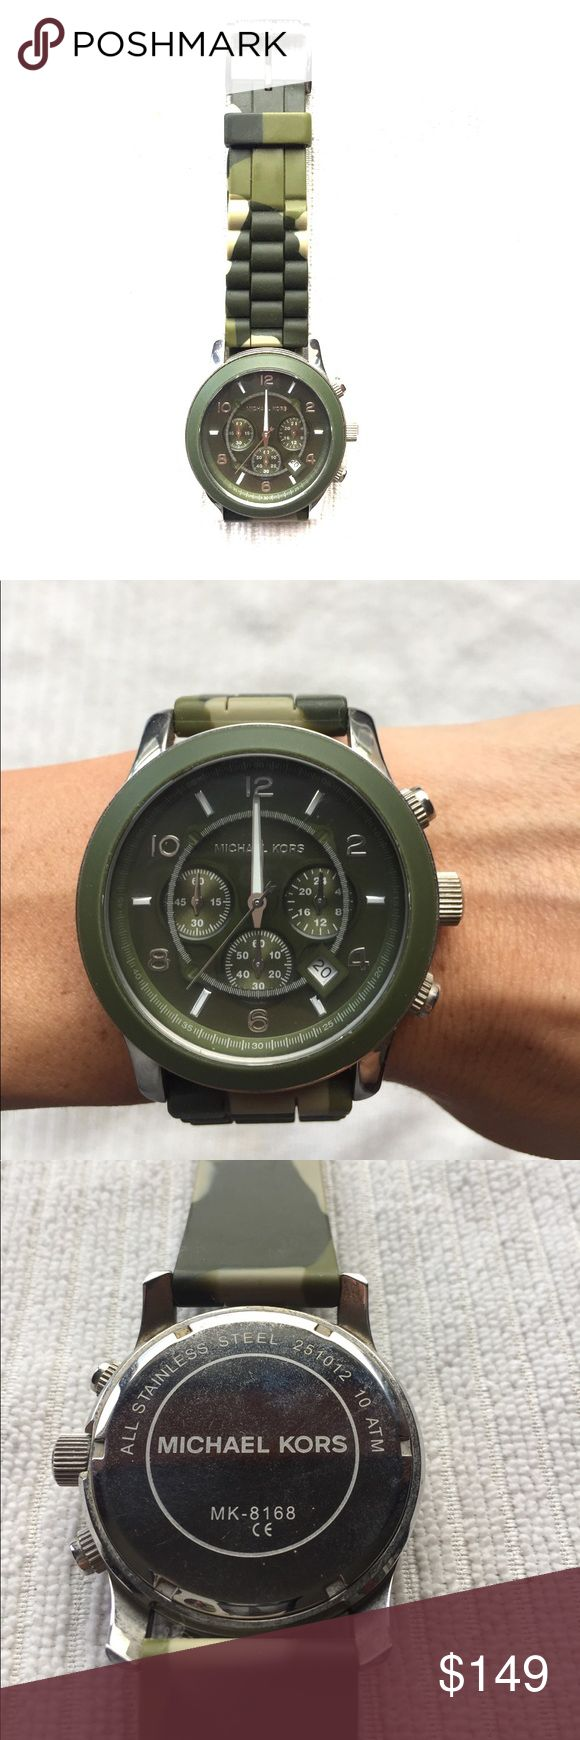 Michael Kors Men's chronograph watch Green camo men's watch. Perfect condition minus needing a new battery. Barely worn. Comfortable silicone strap. Michael Kors Accessories Watches